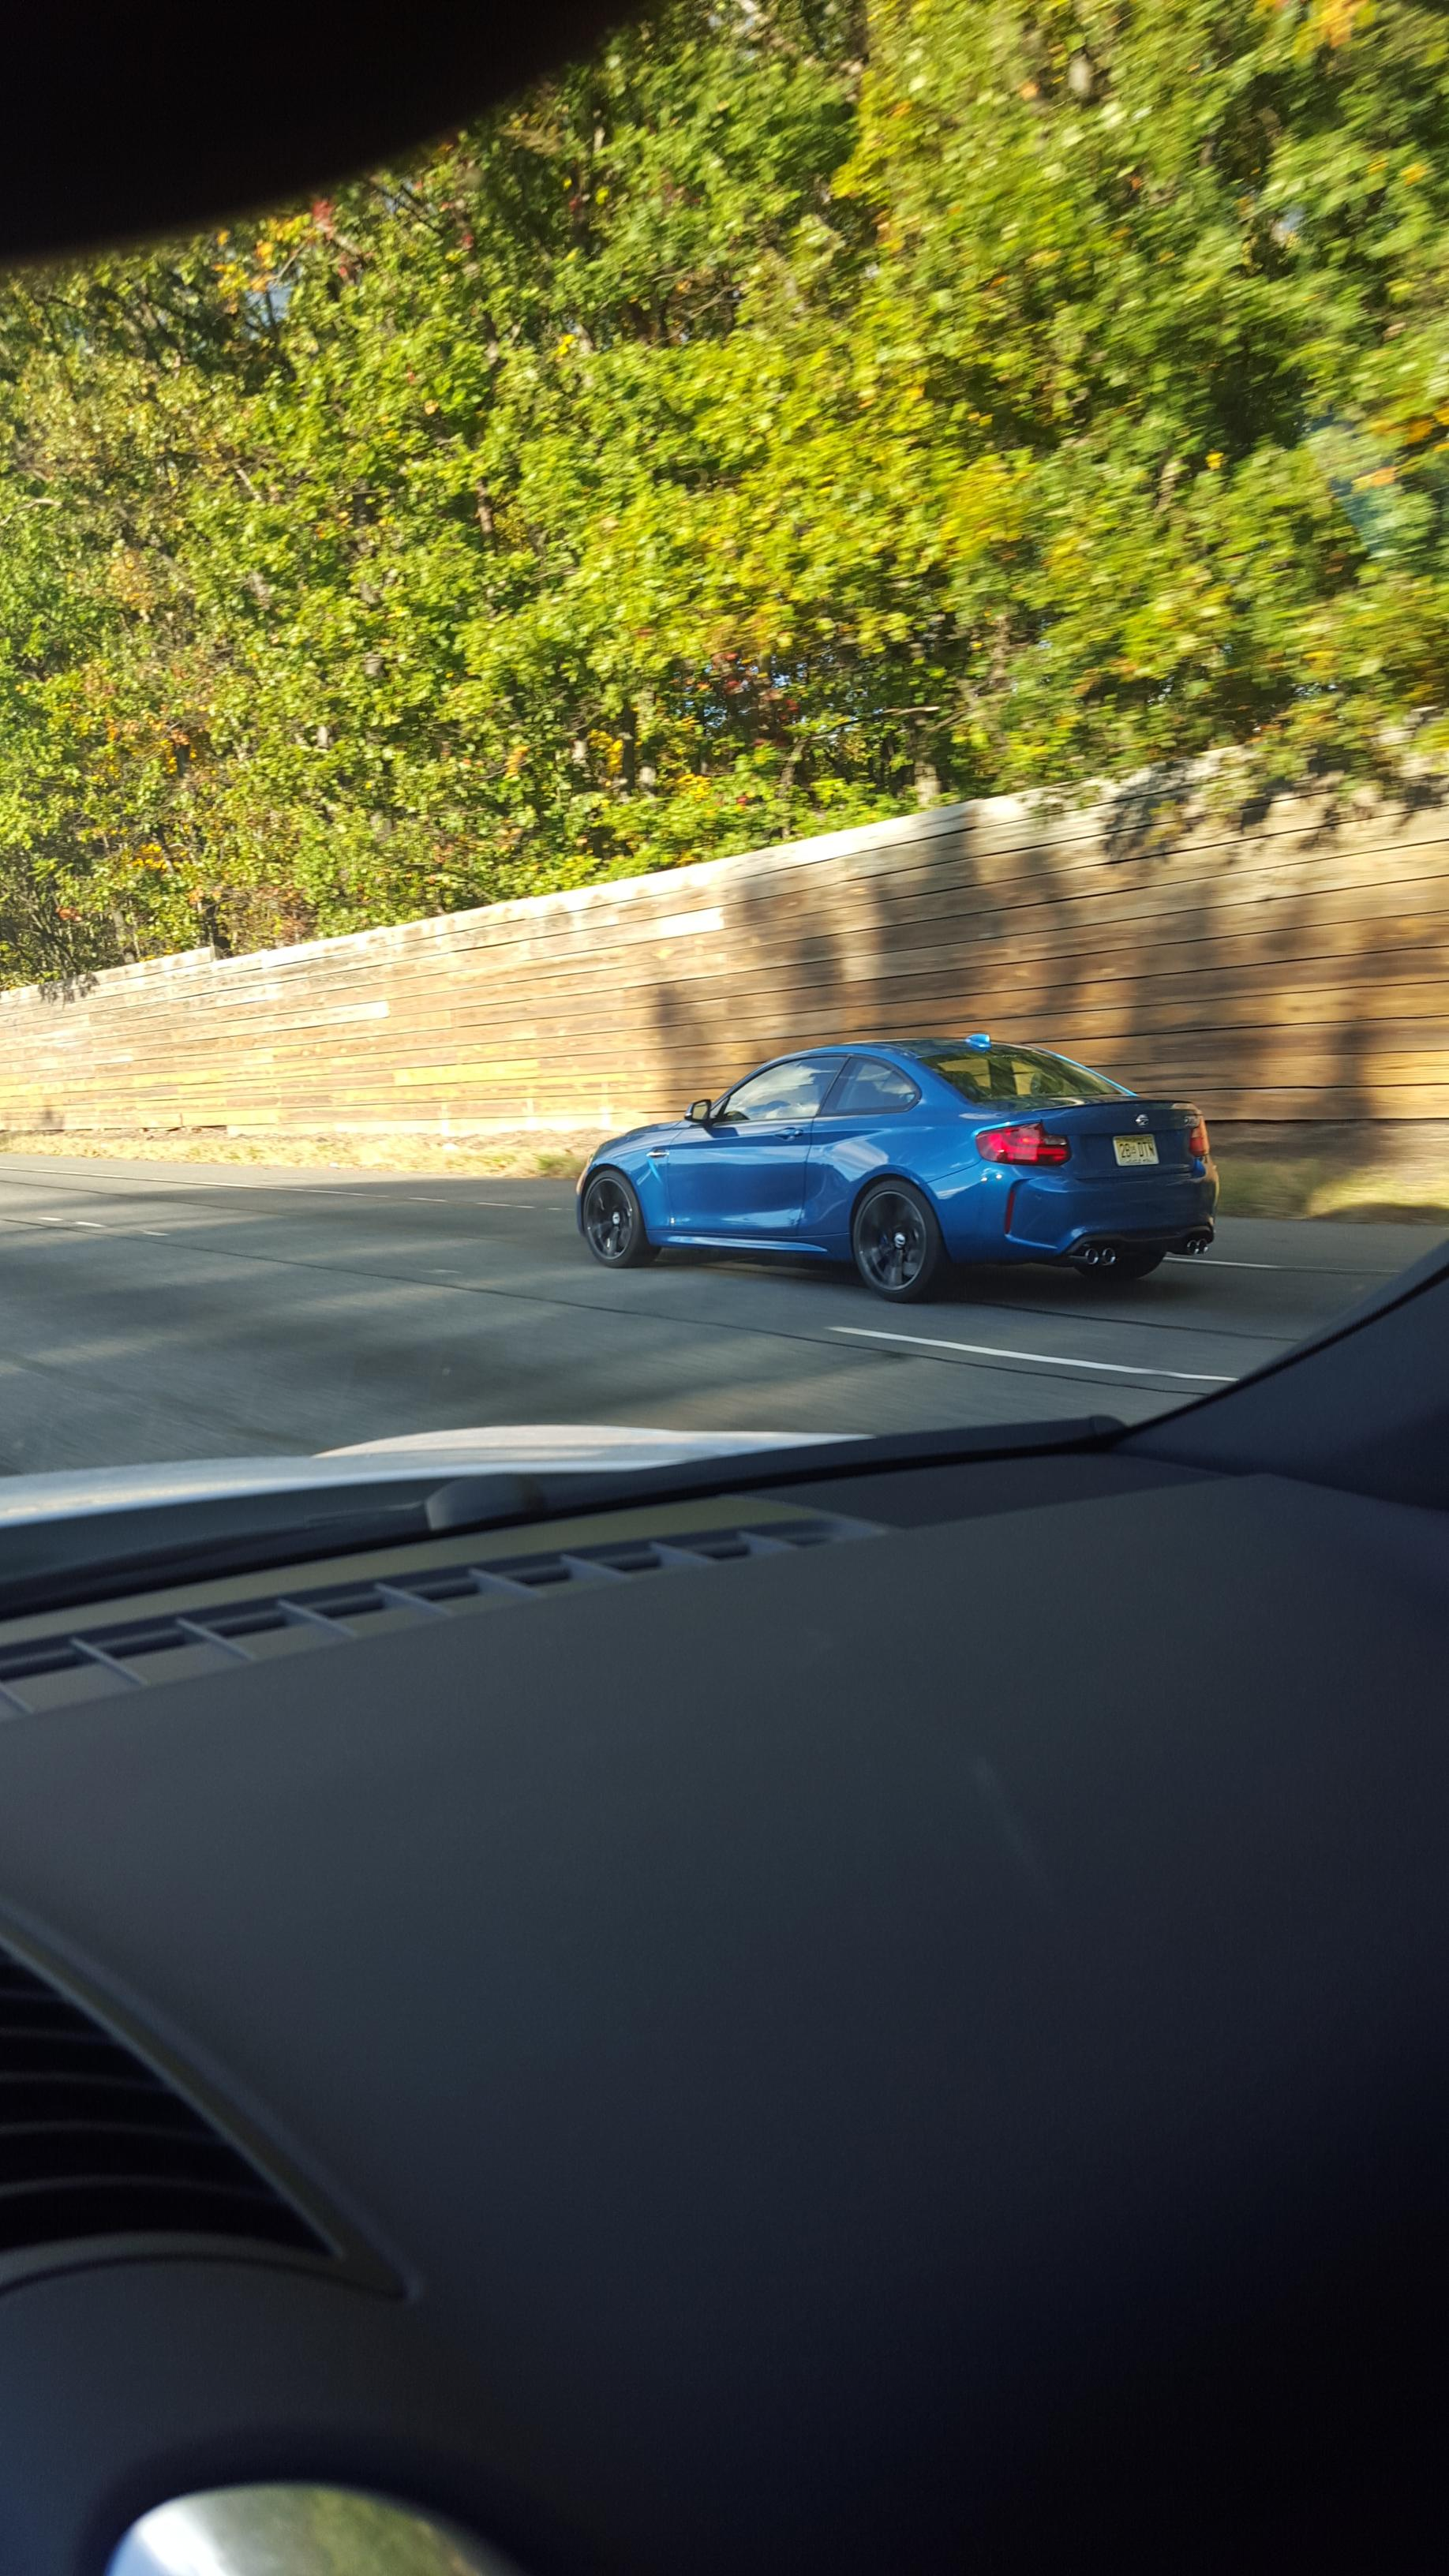 bmw-m2-spotted-on-the-road-in-the-us-100